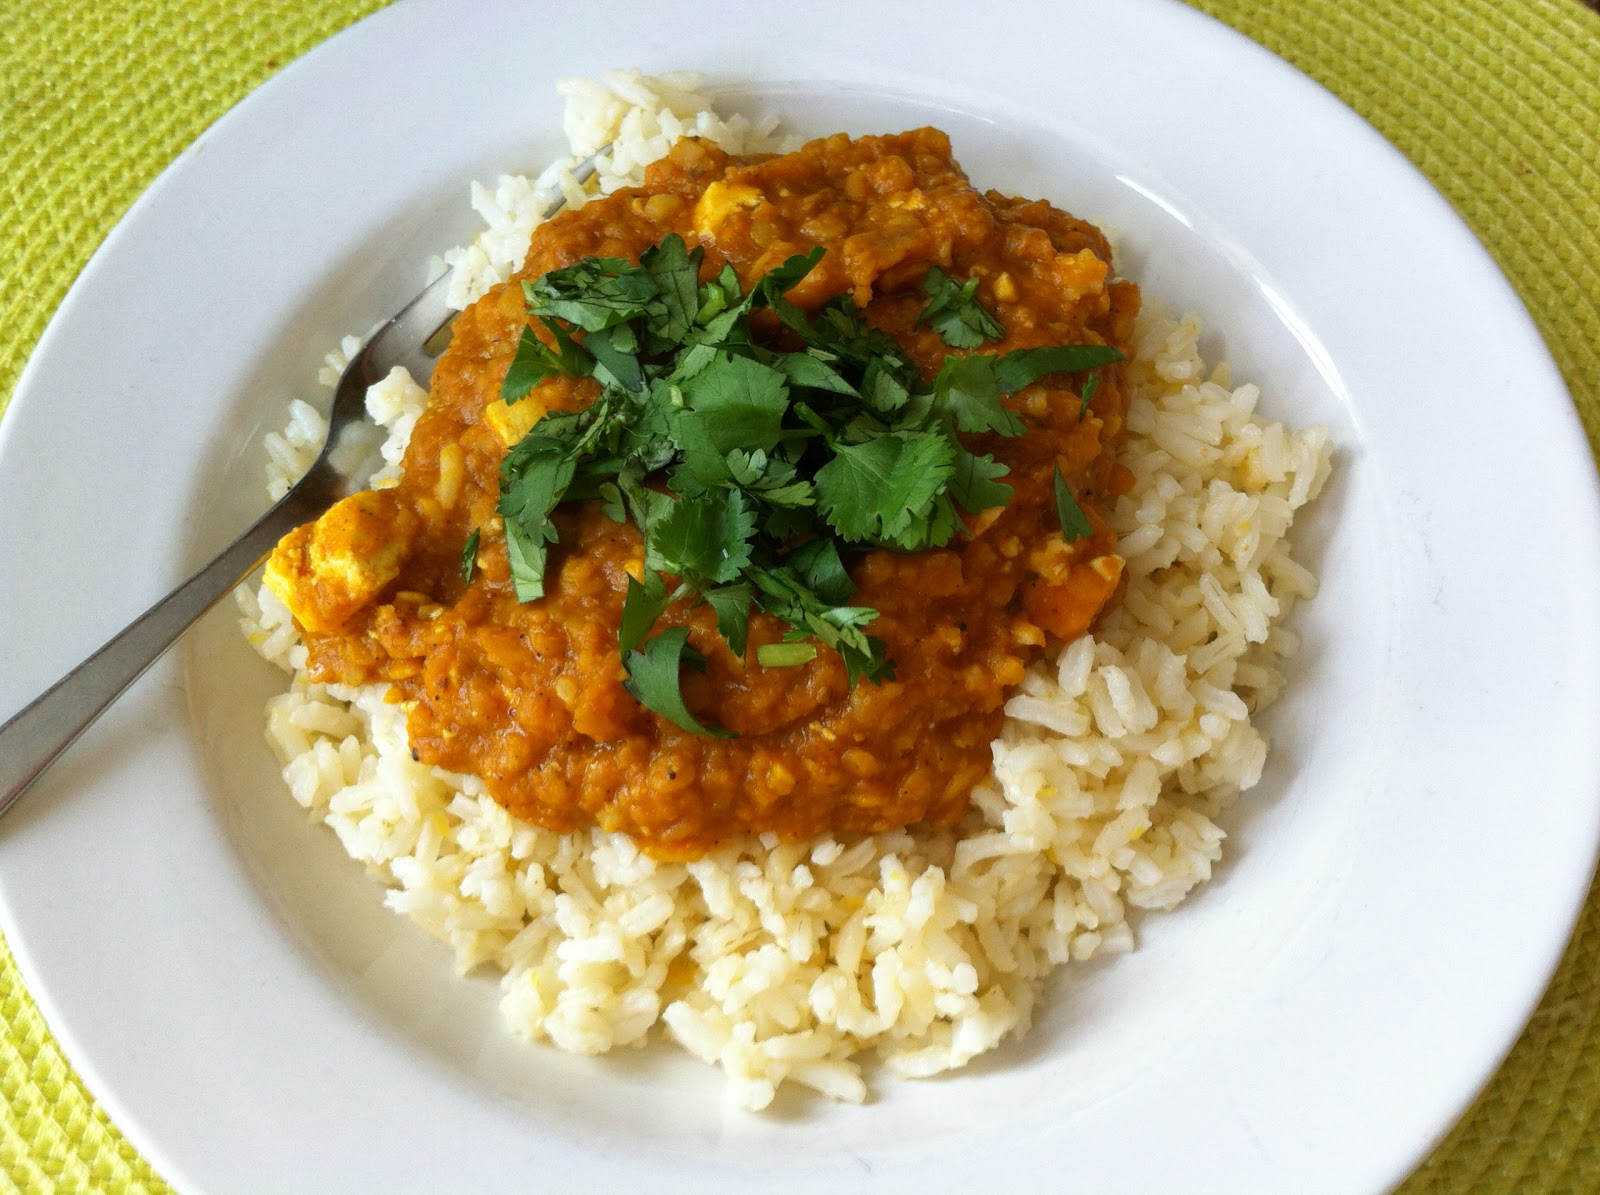 Kirsten's Kitchen: of vegan creations: Red lentil curry